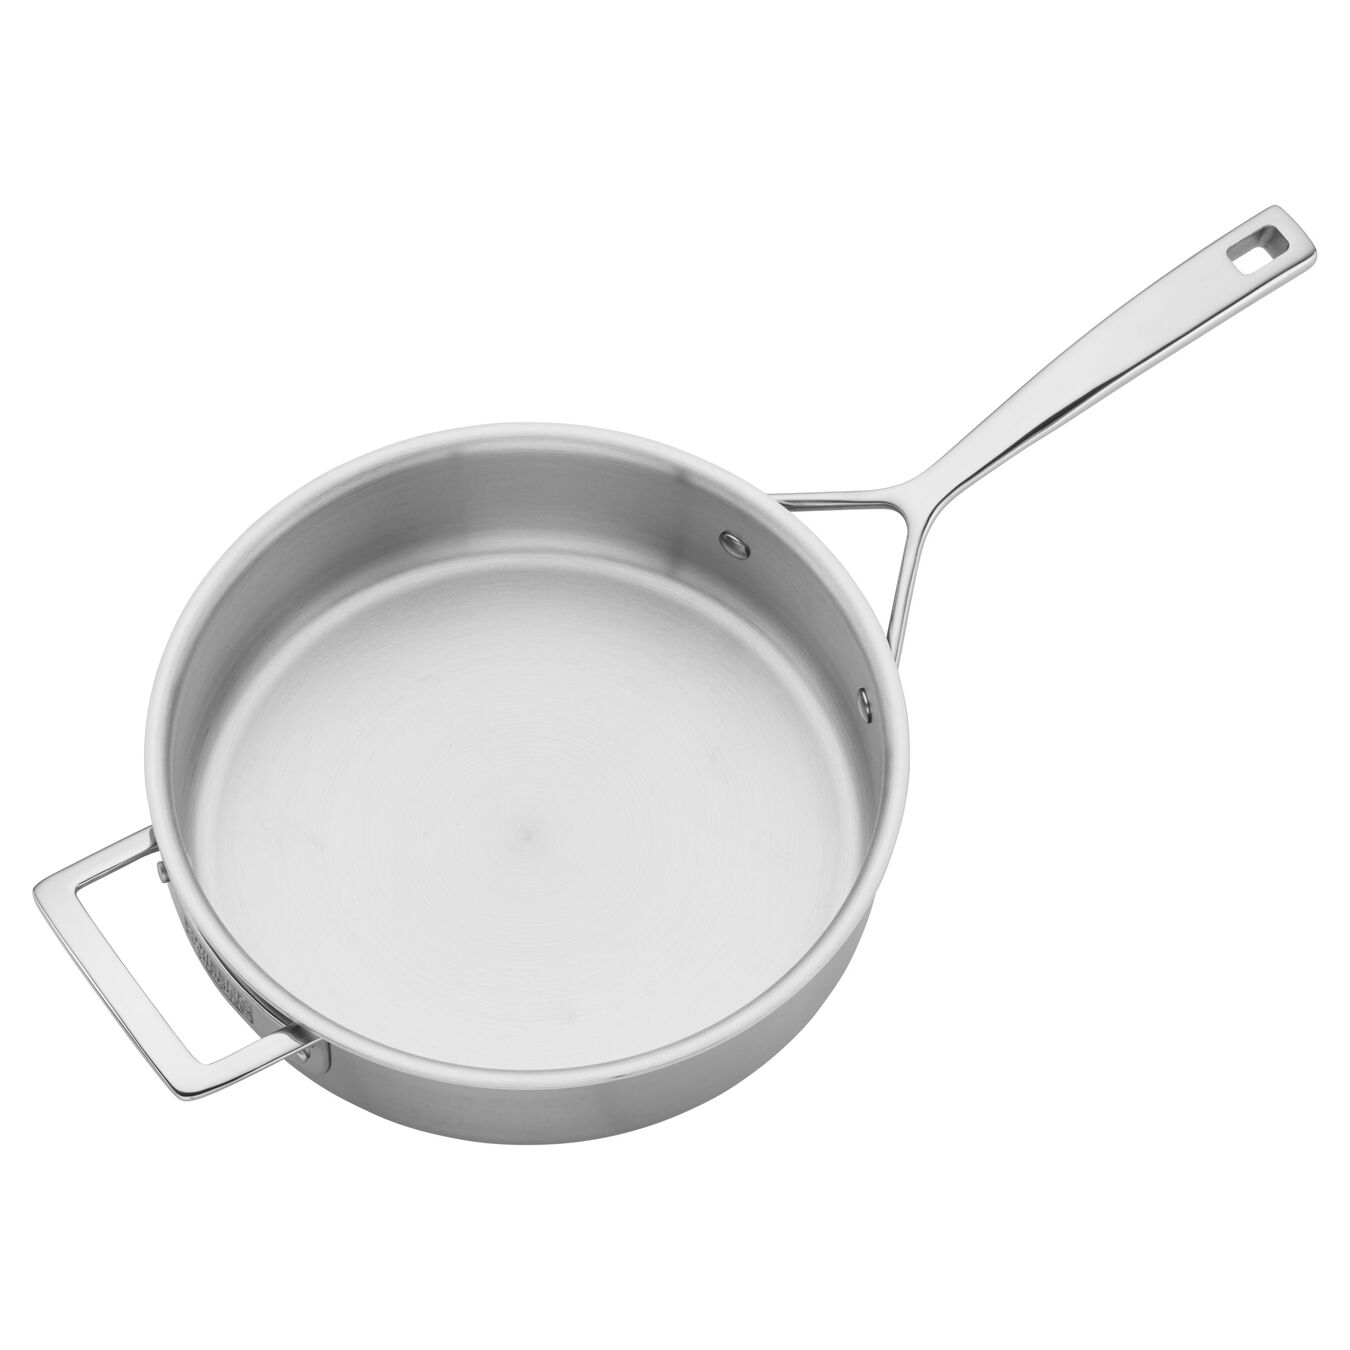 5 Ply, 18/10 Stainless Steel, 9.5-inch, Saute pan with lid,,large 5